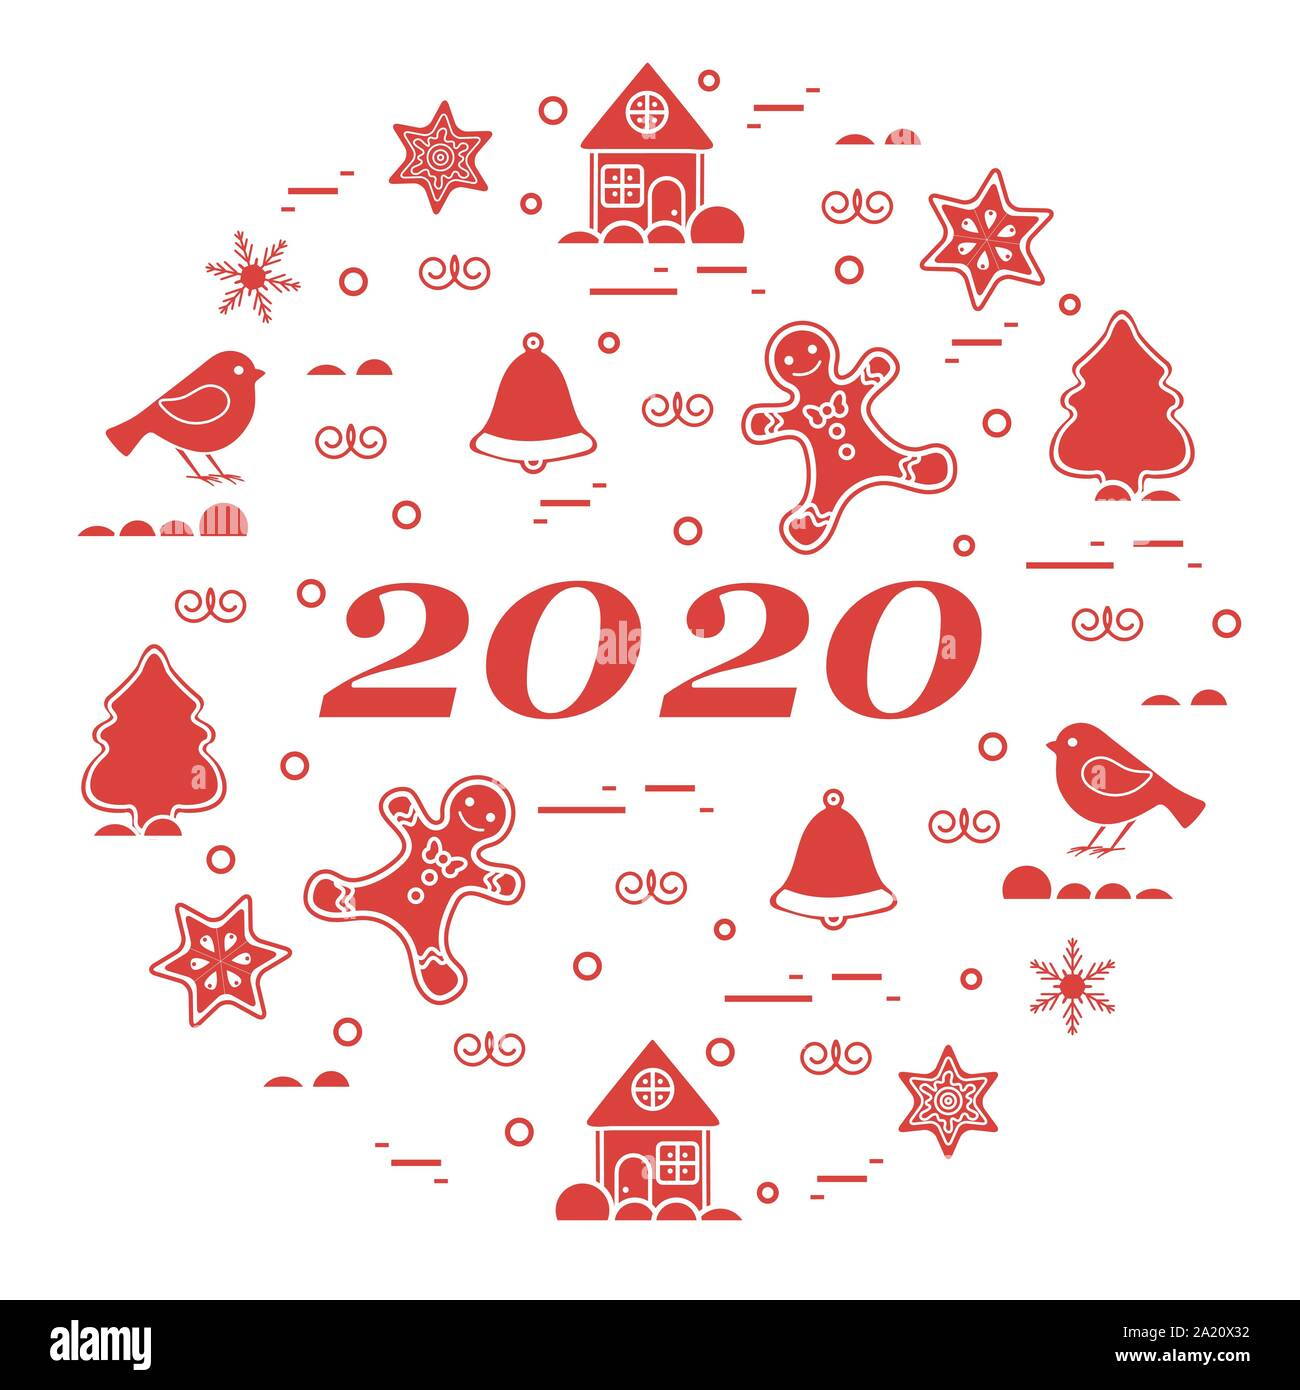 A Star For Christmas 2020 Happy New Year 2020 card. Merry Christmas. Vector illustration